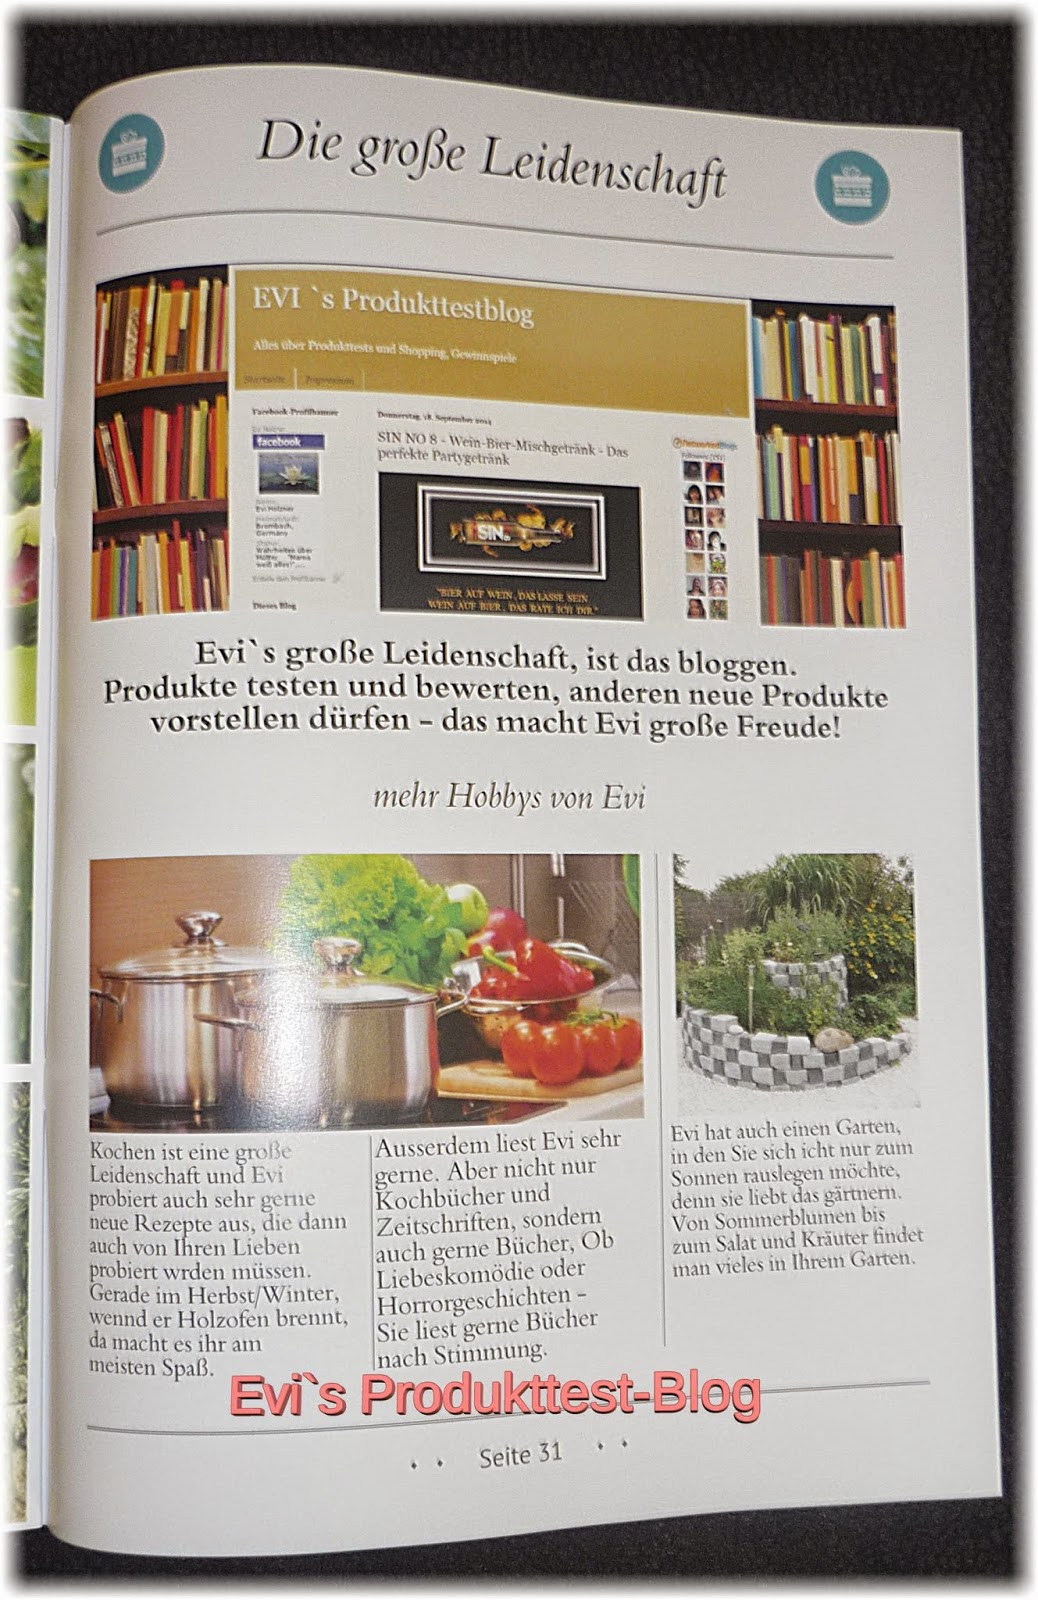 evi s produkttestblog zeitung selbst gestalten mit sendmoments im test. Black Bedroom Furniture Sets. Home Design Ideas